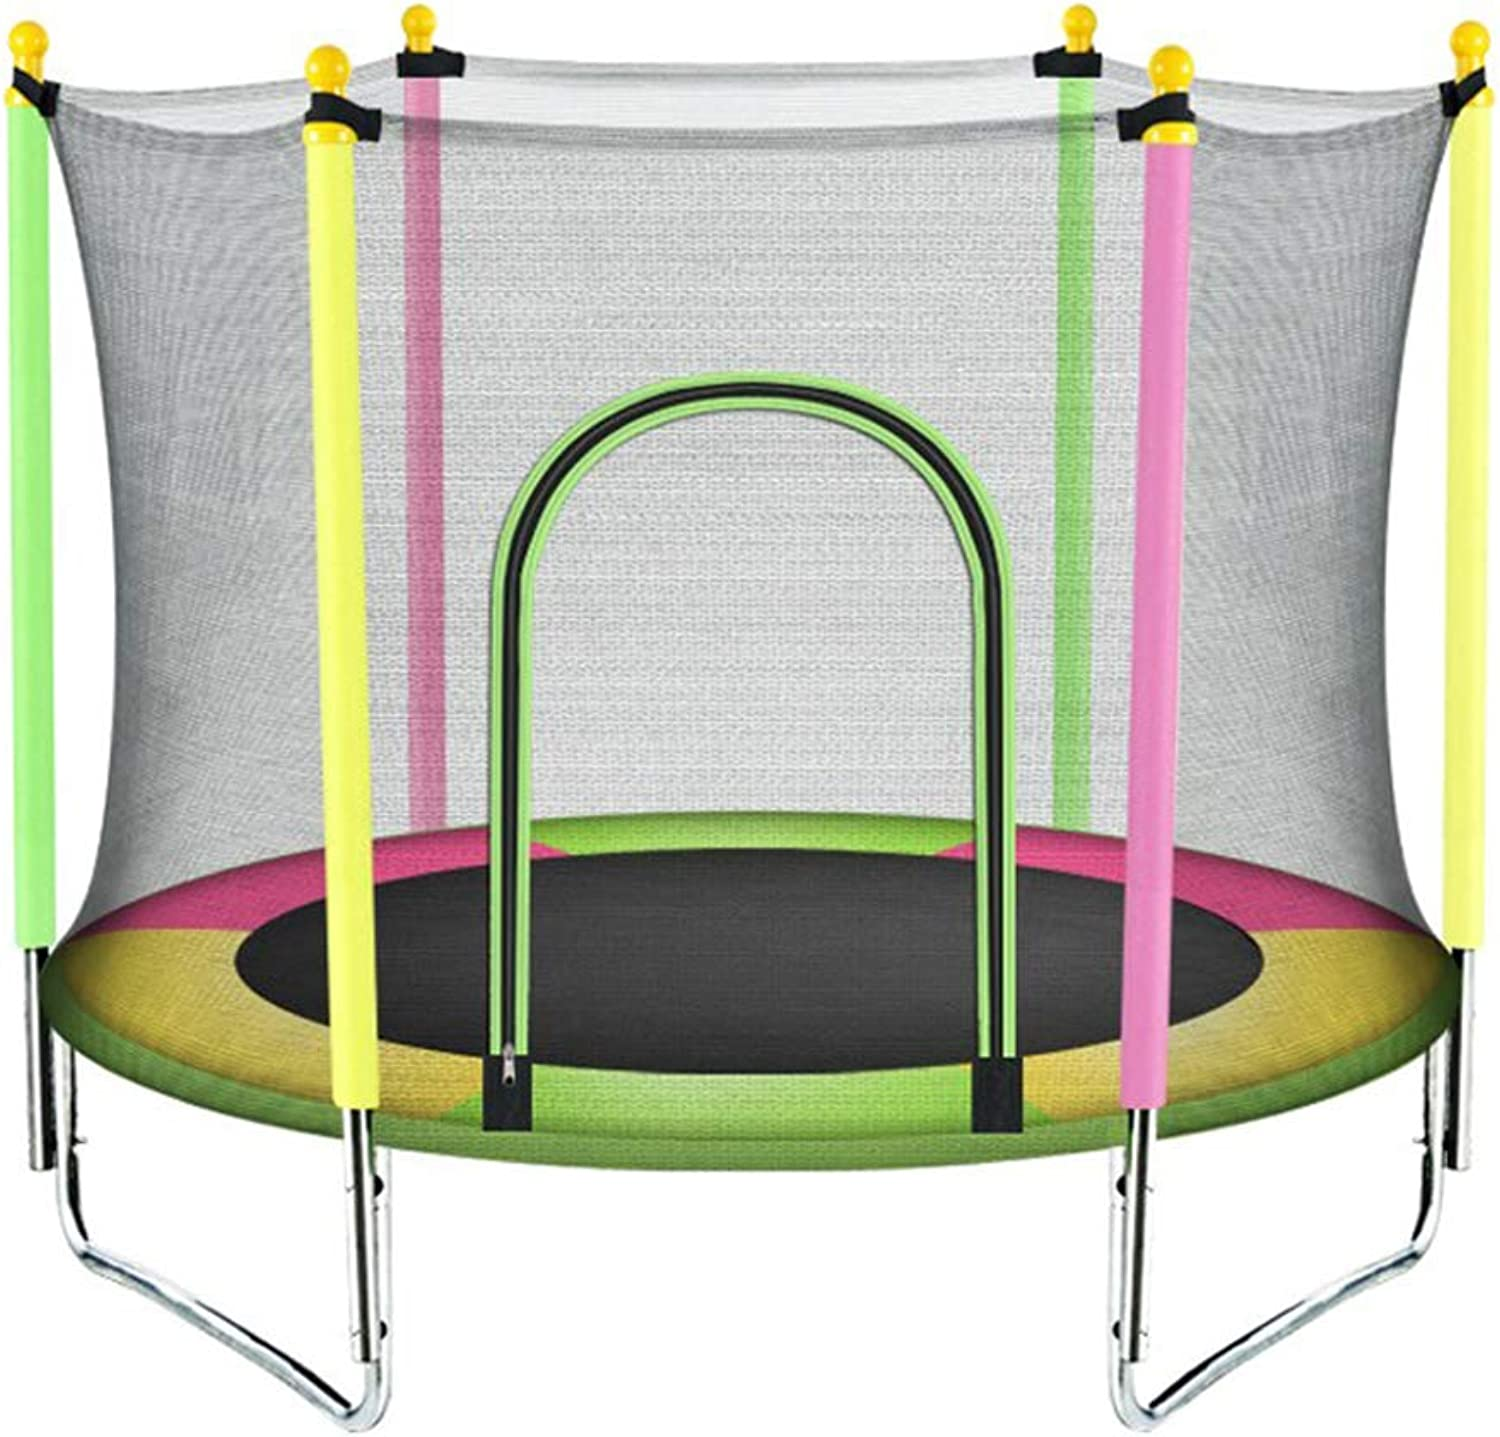 Trampoline Jumping Sheet Kids Bouncing Bed with Predective Net Indoor Entertainment Lean Aerobic Exercise Gym Fitness Equipment Sports Weight Loss Device